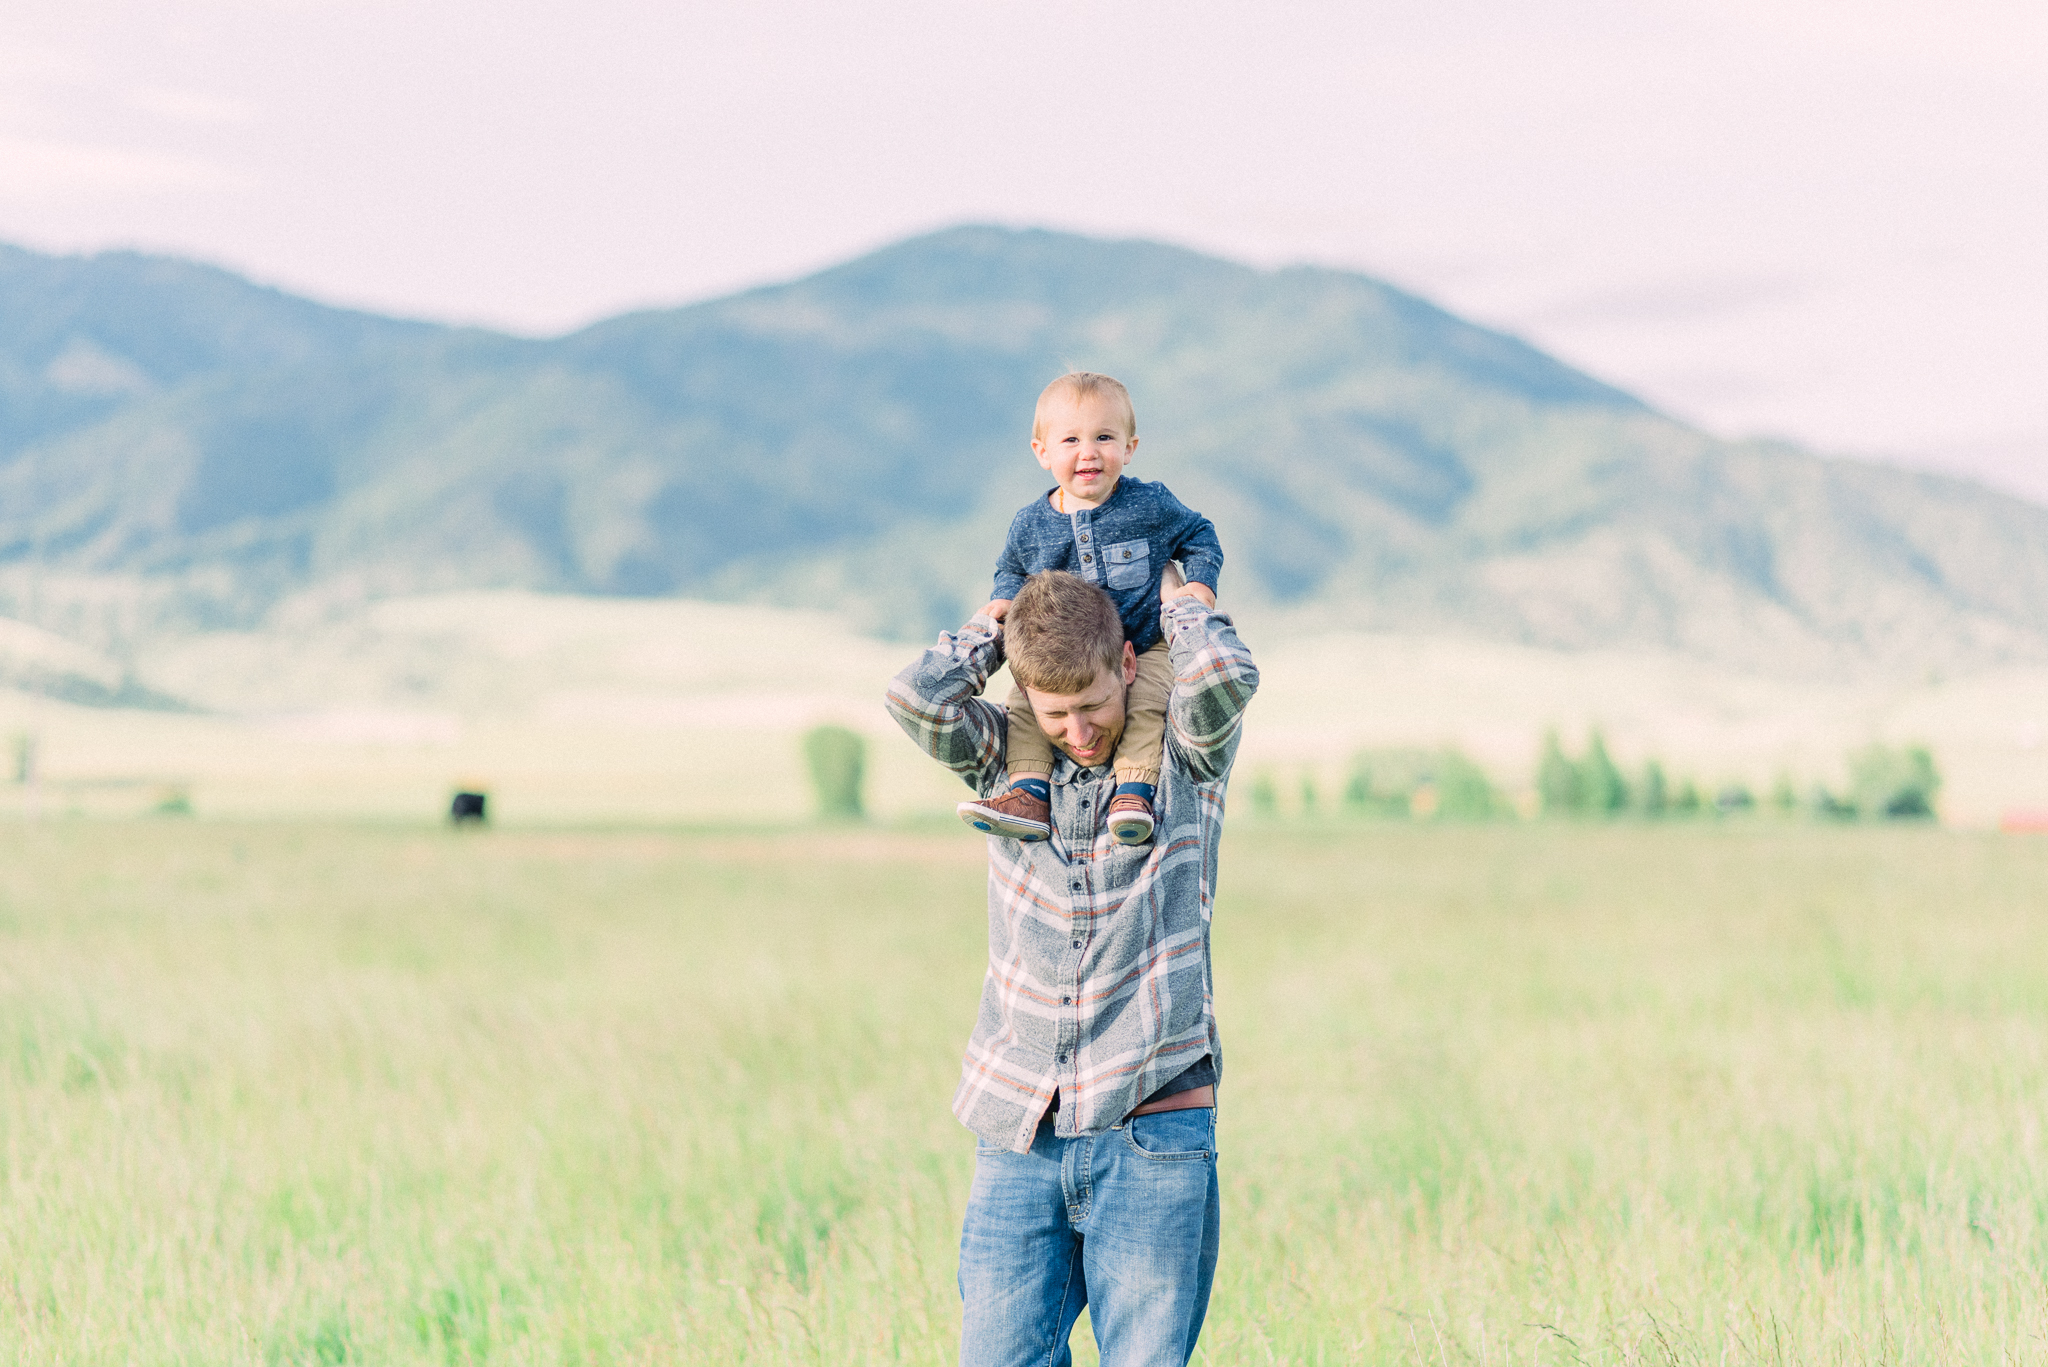 home sweet home, thats darling darling, escape, idaho, life on the farm, photographer, idaho, idahome, lifestyle photographer, swan valley, rainey creek farm, farm life, Scottish Highland, Rainey creek cattle co, black angus, red angus, new farmers, family farm, ranching, cattle ranching, starting a ranch